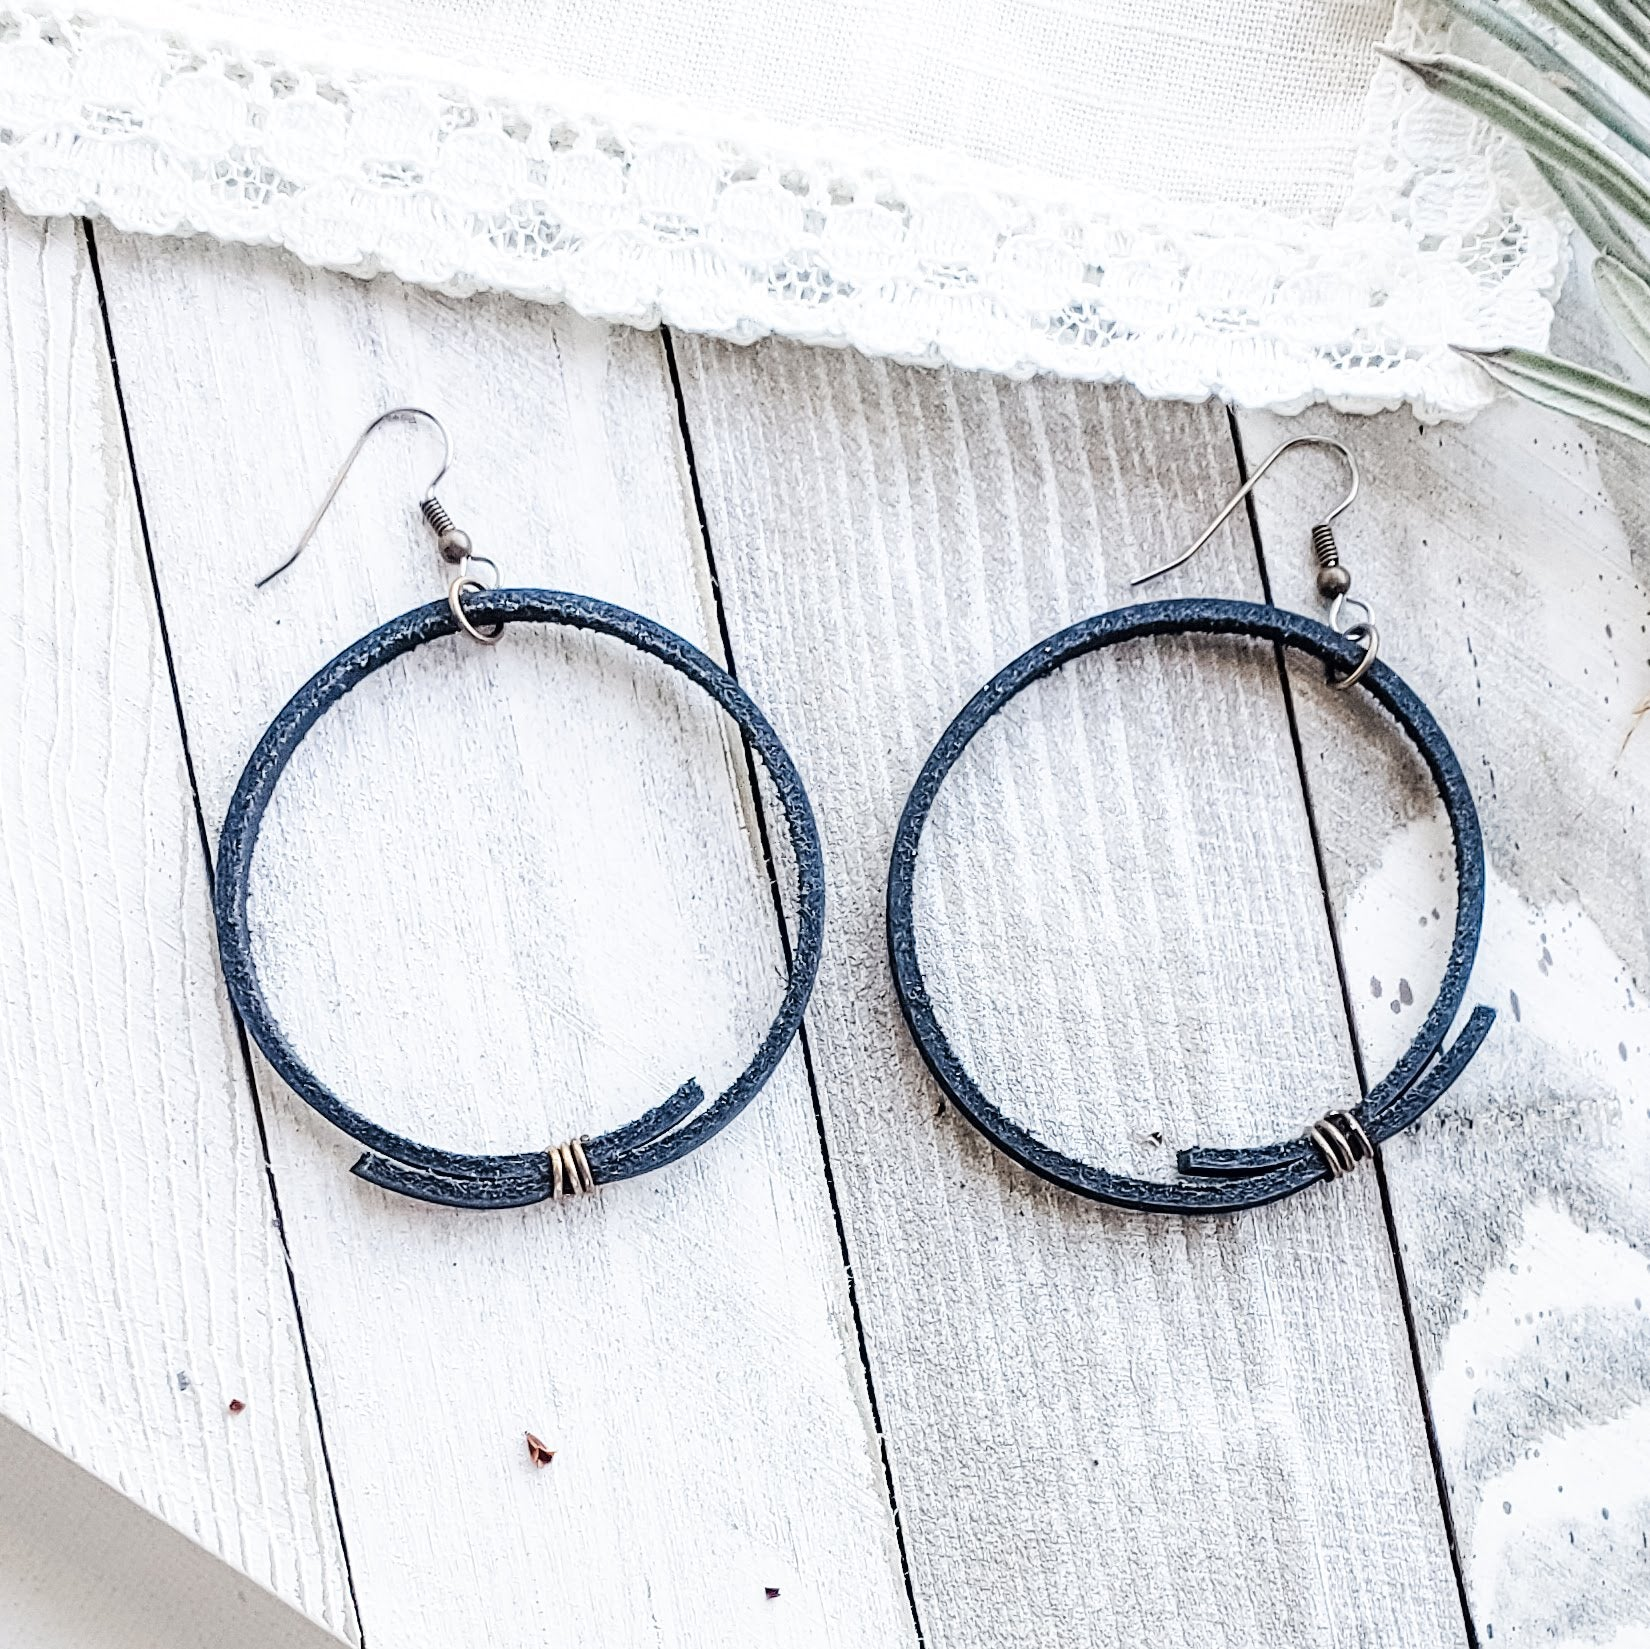 Black Leather Hoop Earrings / Rustic Hoop Earrings / Minimal / 2.25 x 2.25""